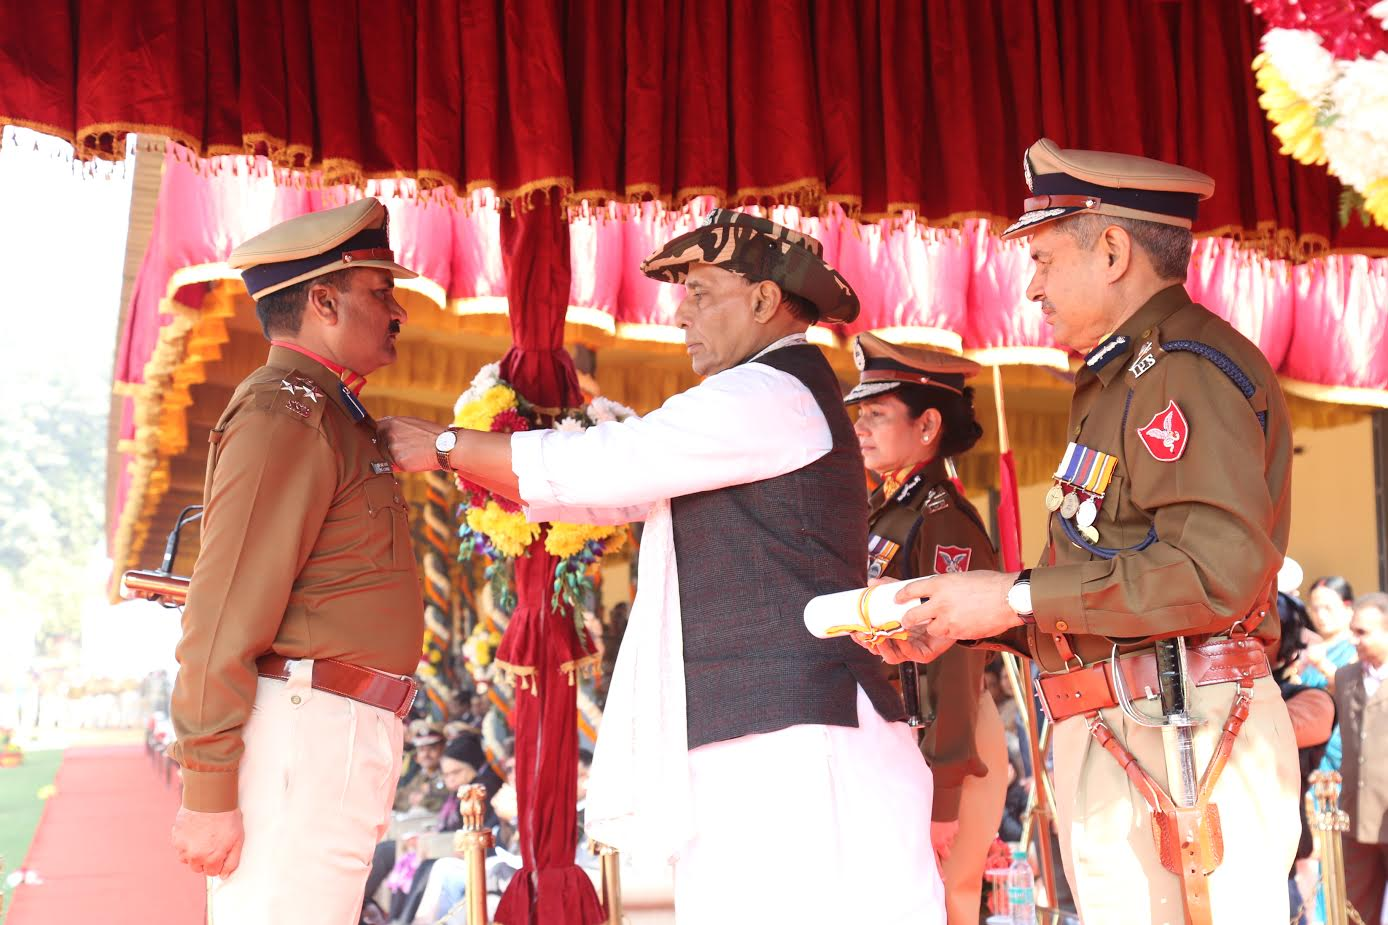 shri-rajnath-singh-giving-medals-to-ssb-jawans-1